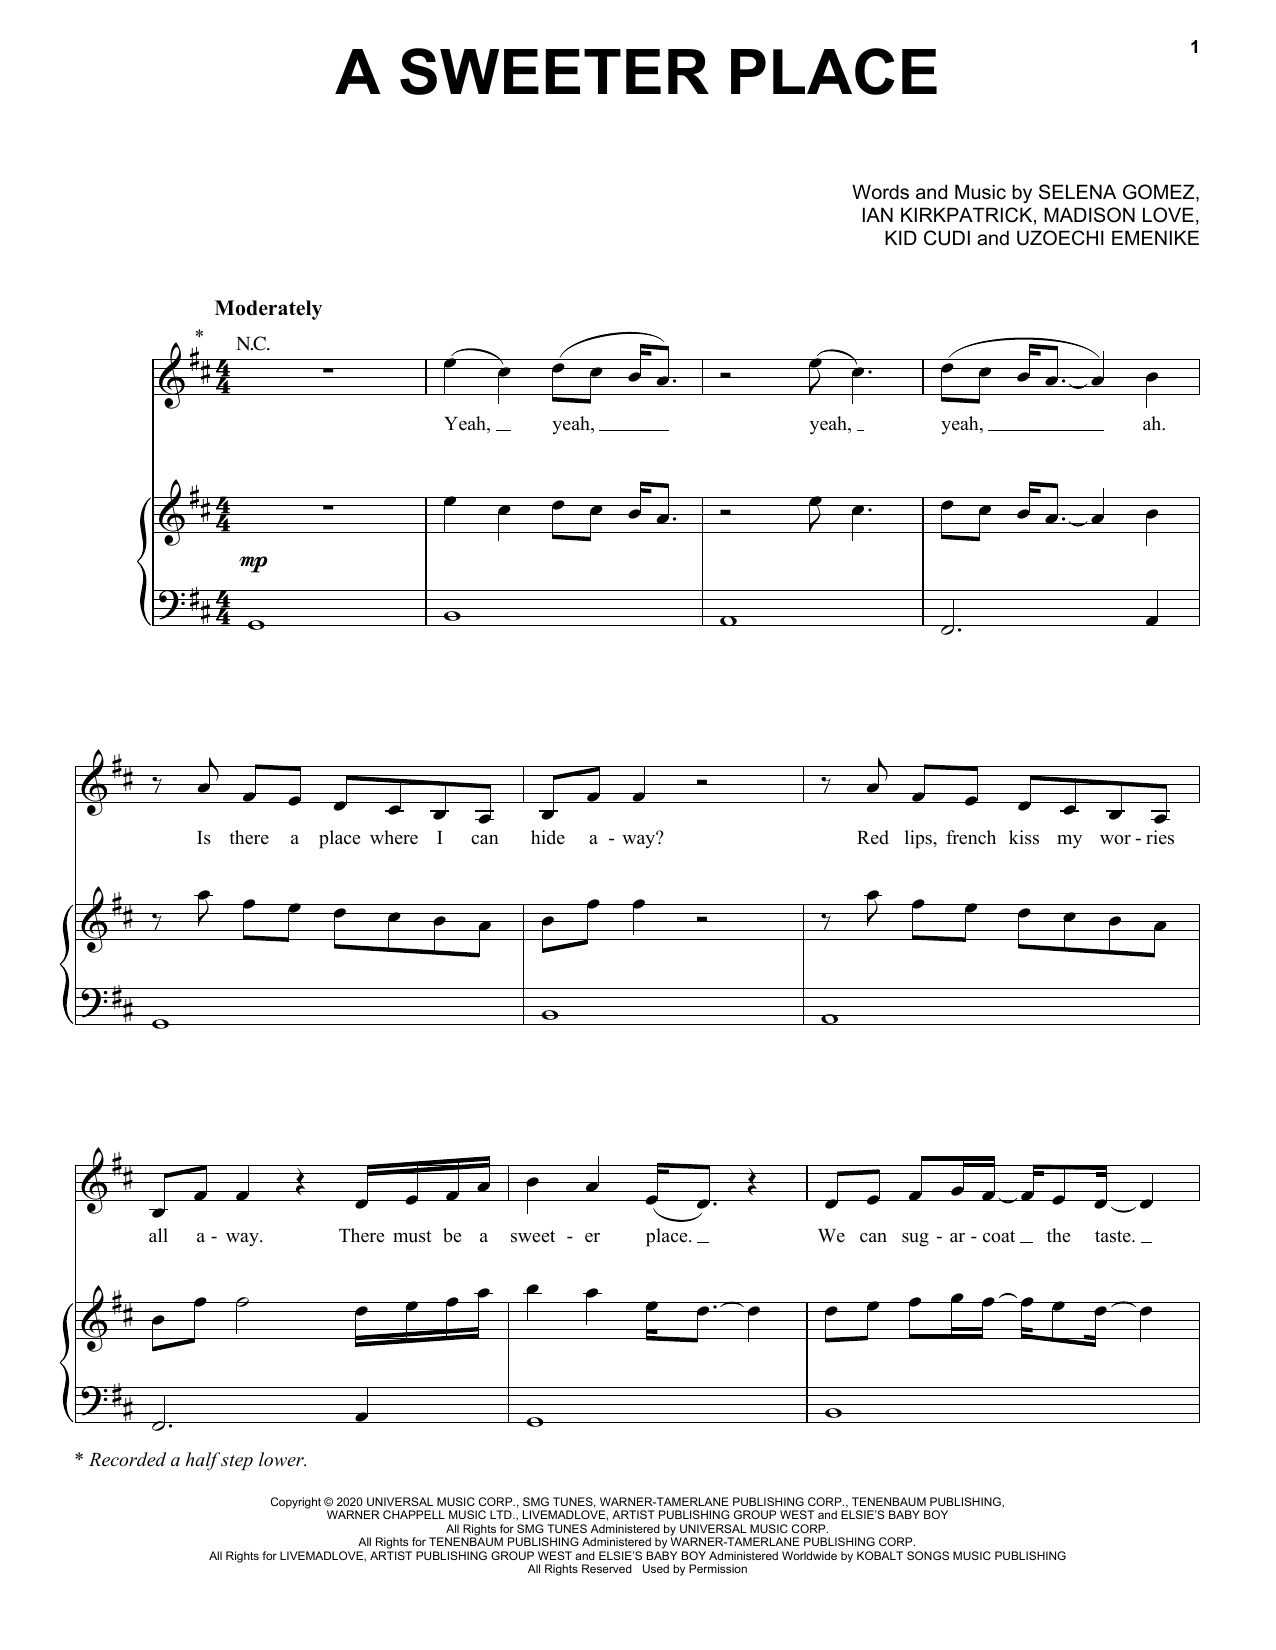 Selena Gomez ft. Kid Cudi A Sweeter Place sheet music notes and chords. Download Printable PDF.